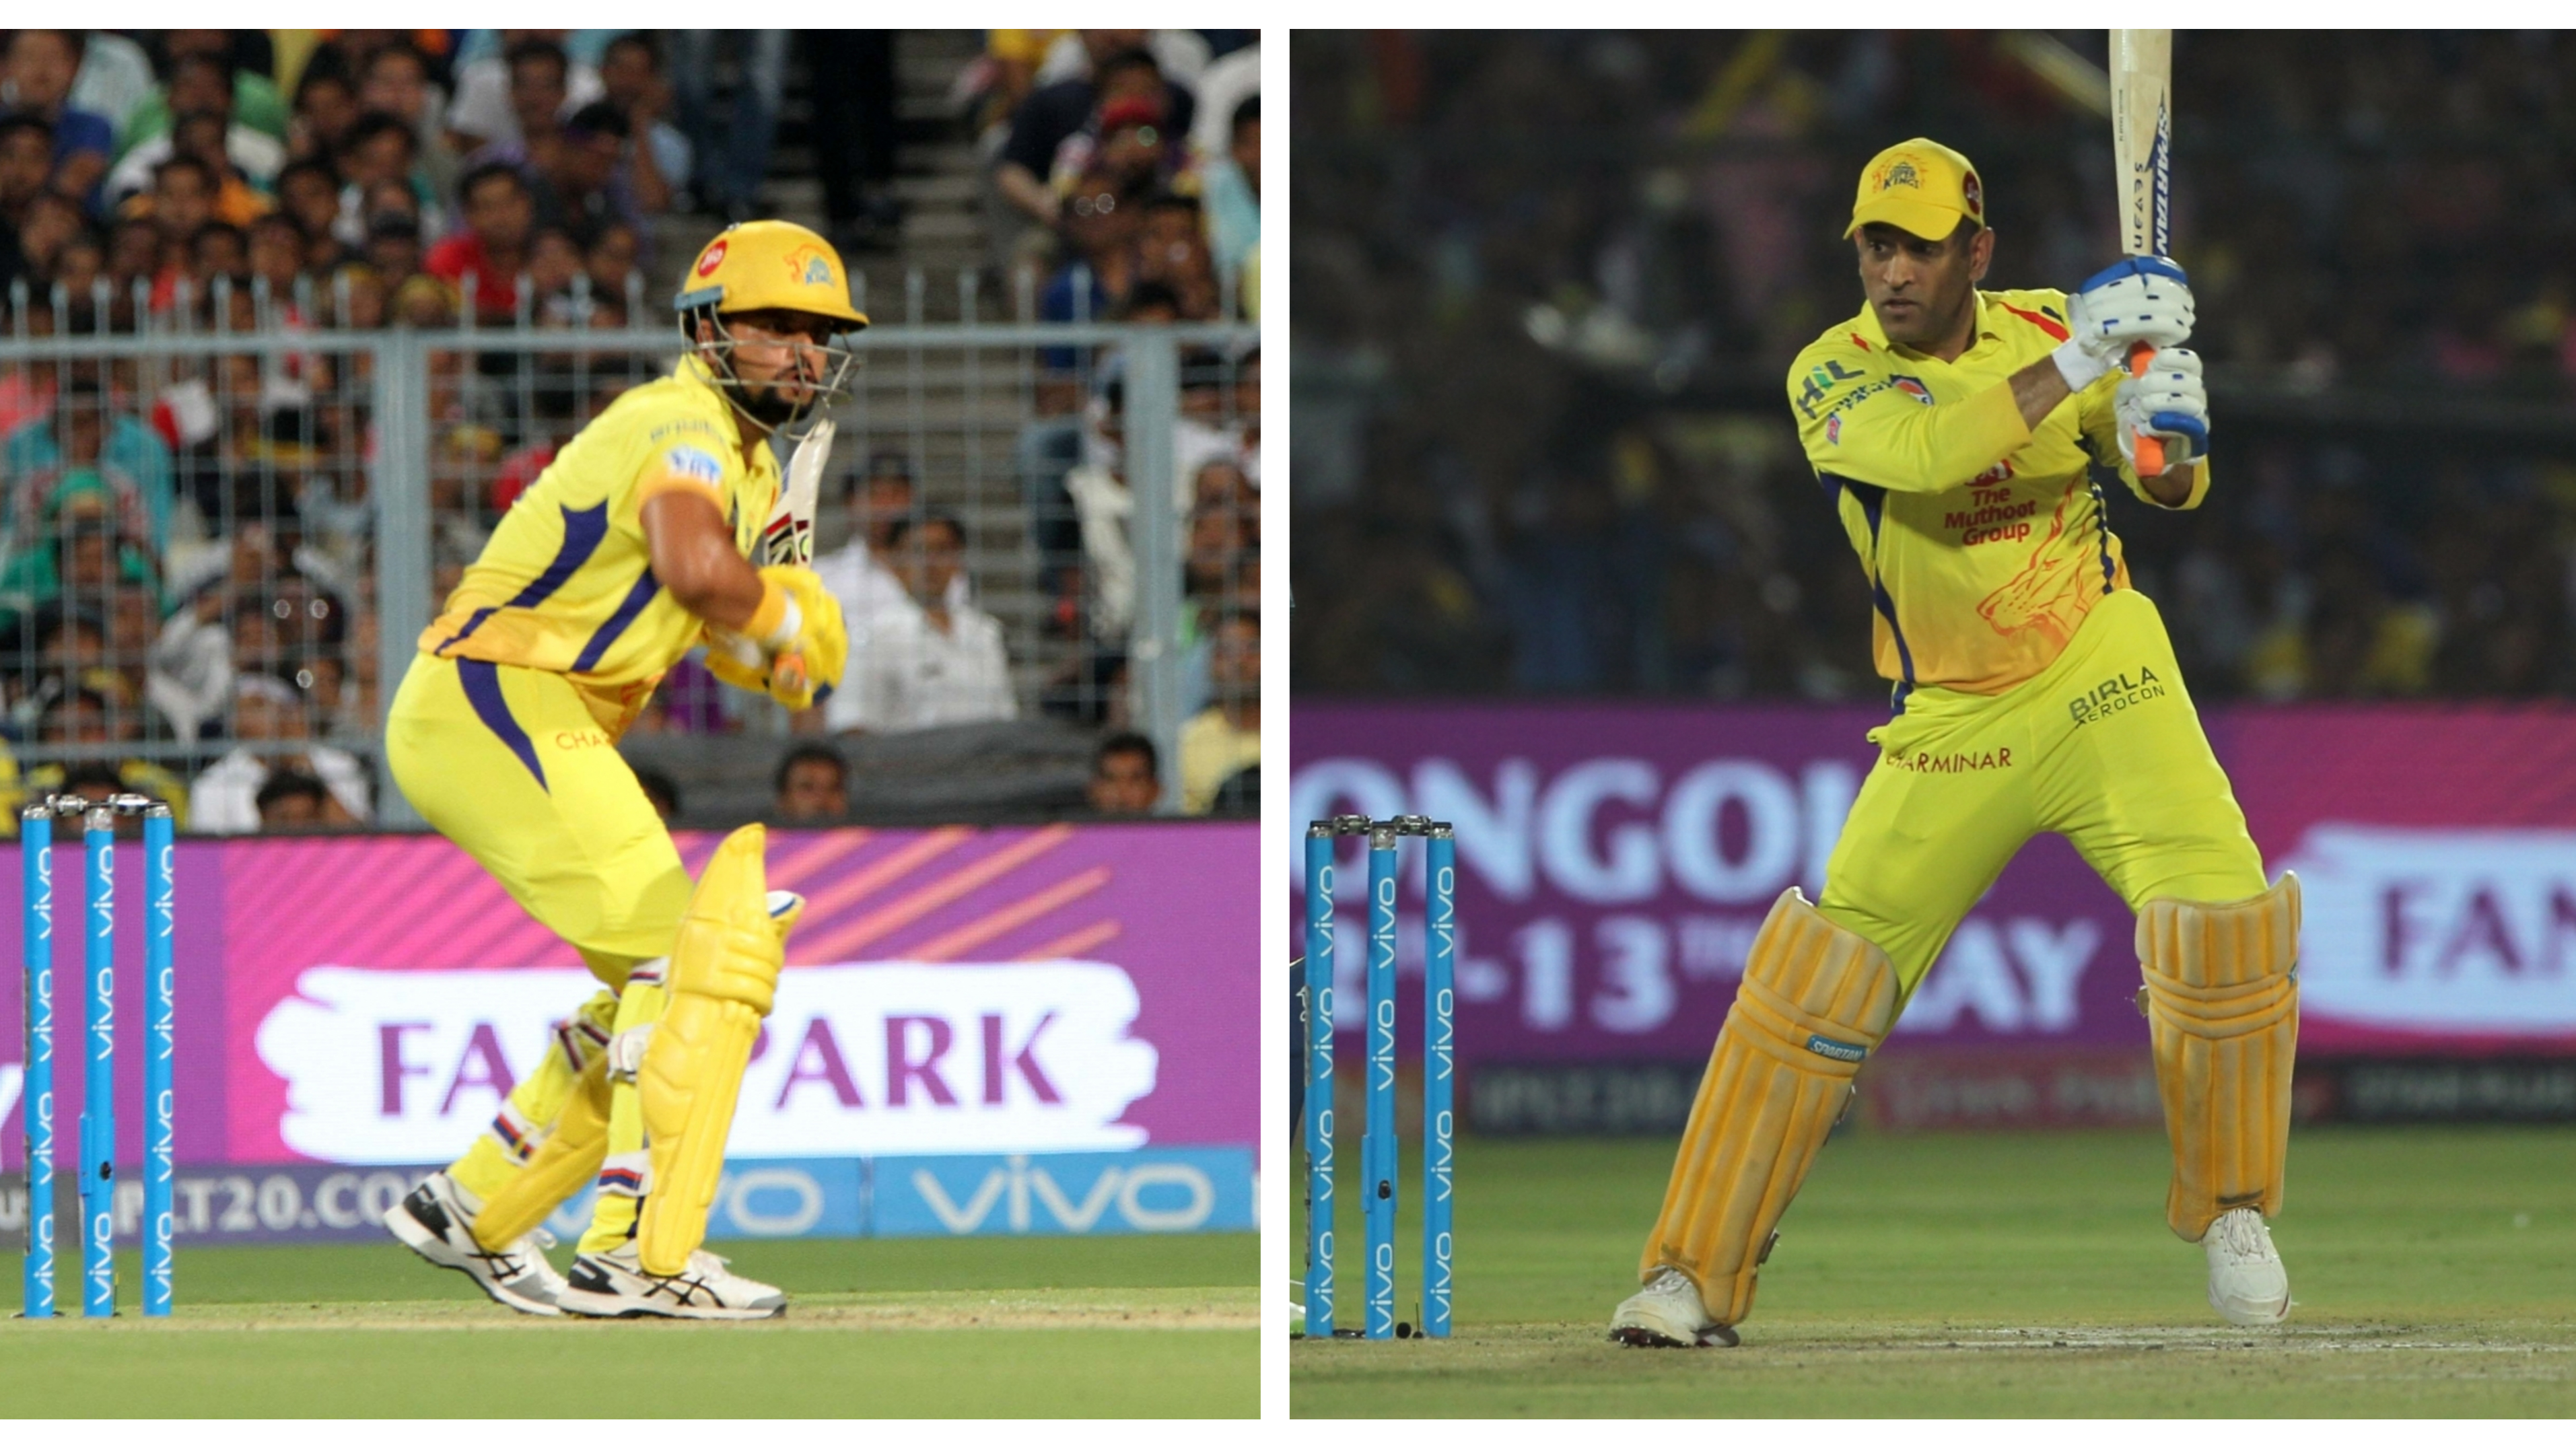 IPL 2018: Suresh Raina deems MS Dhoni as the X-factor for Chennai Super Kings